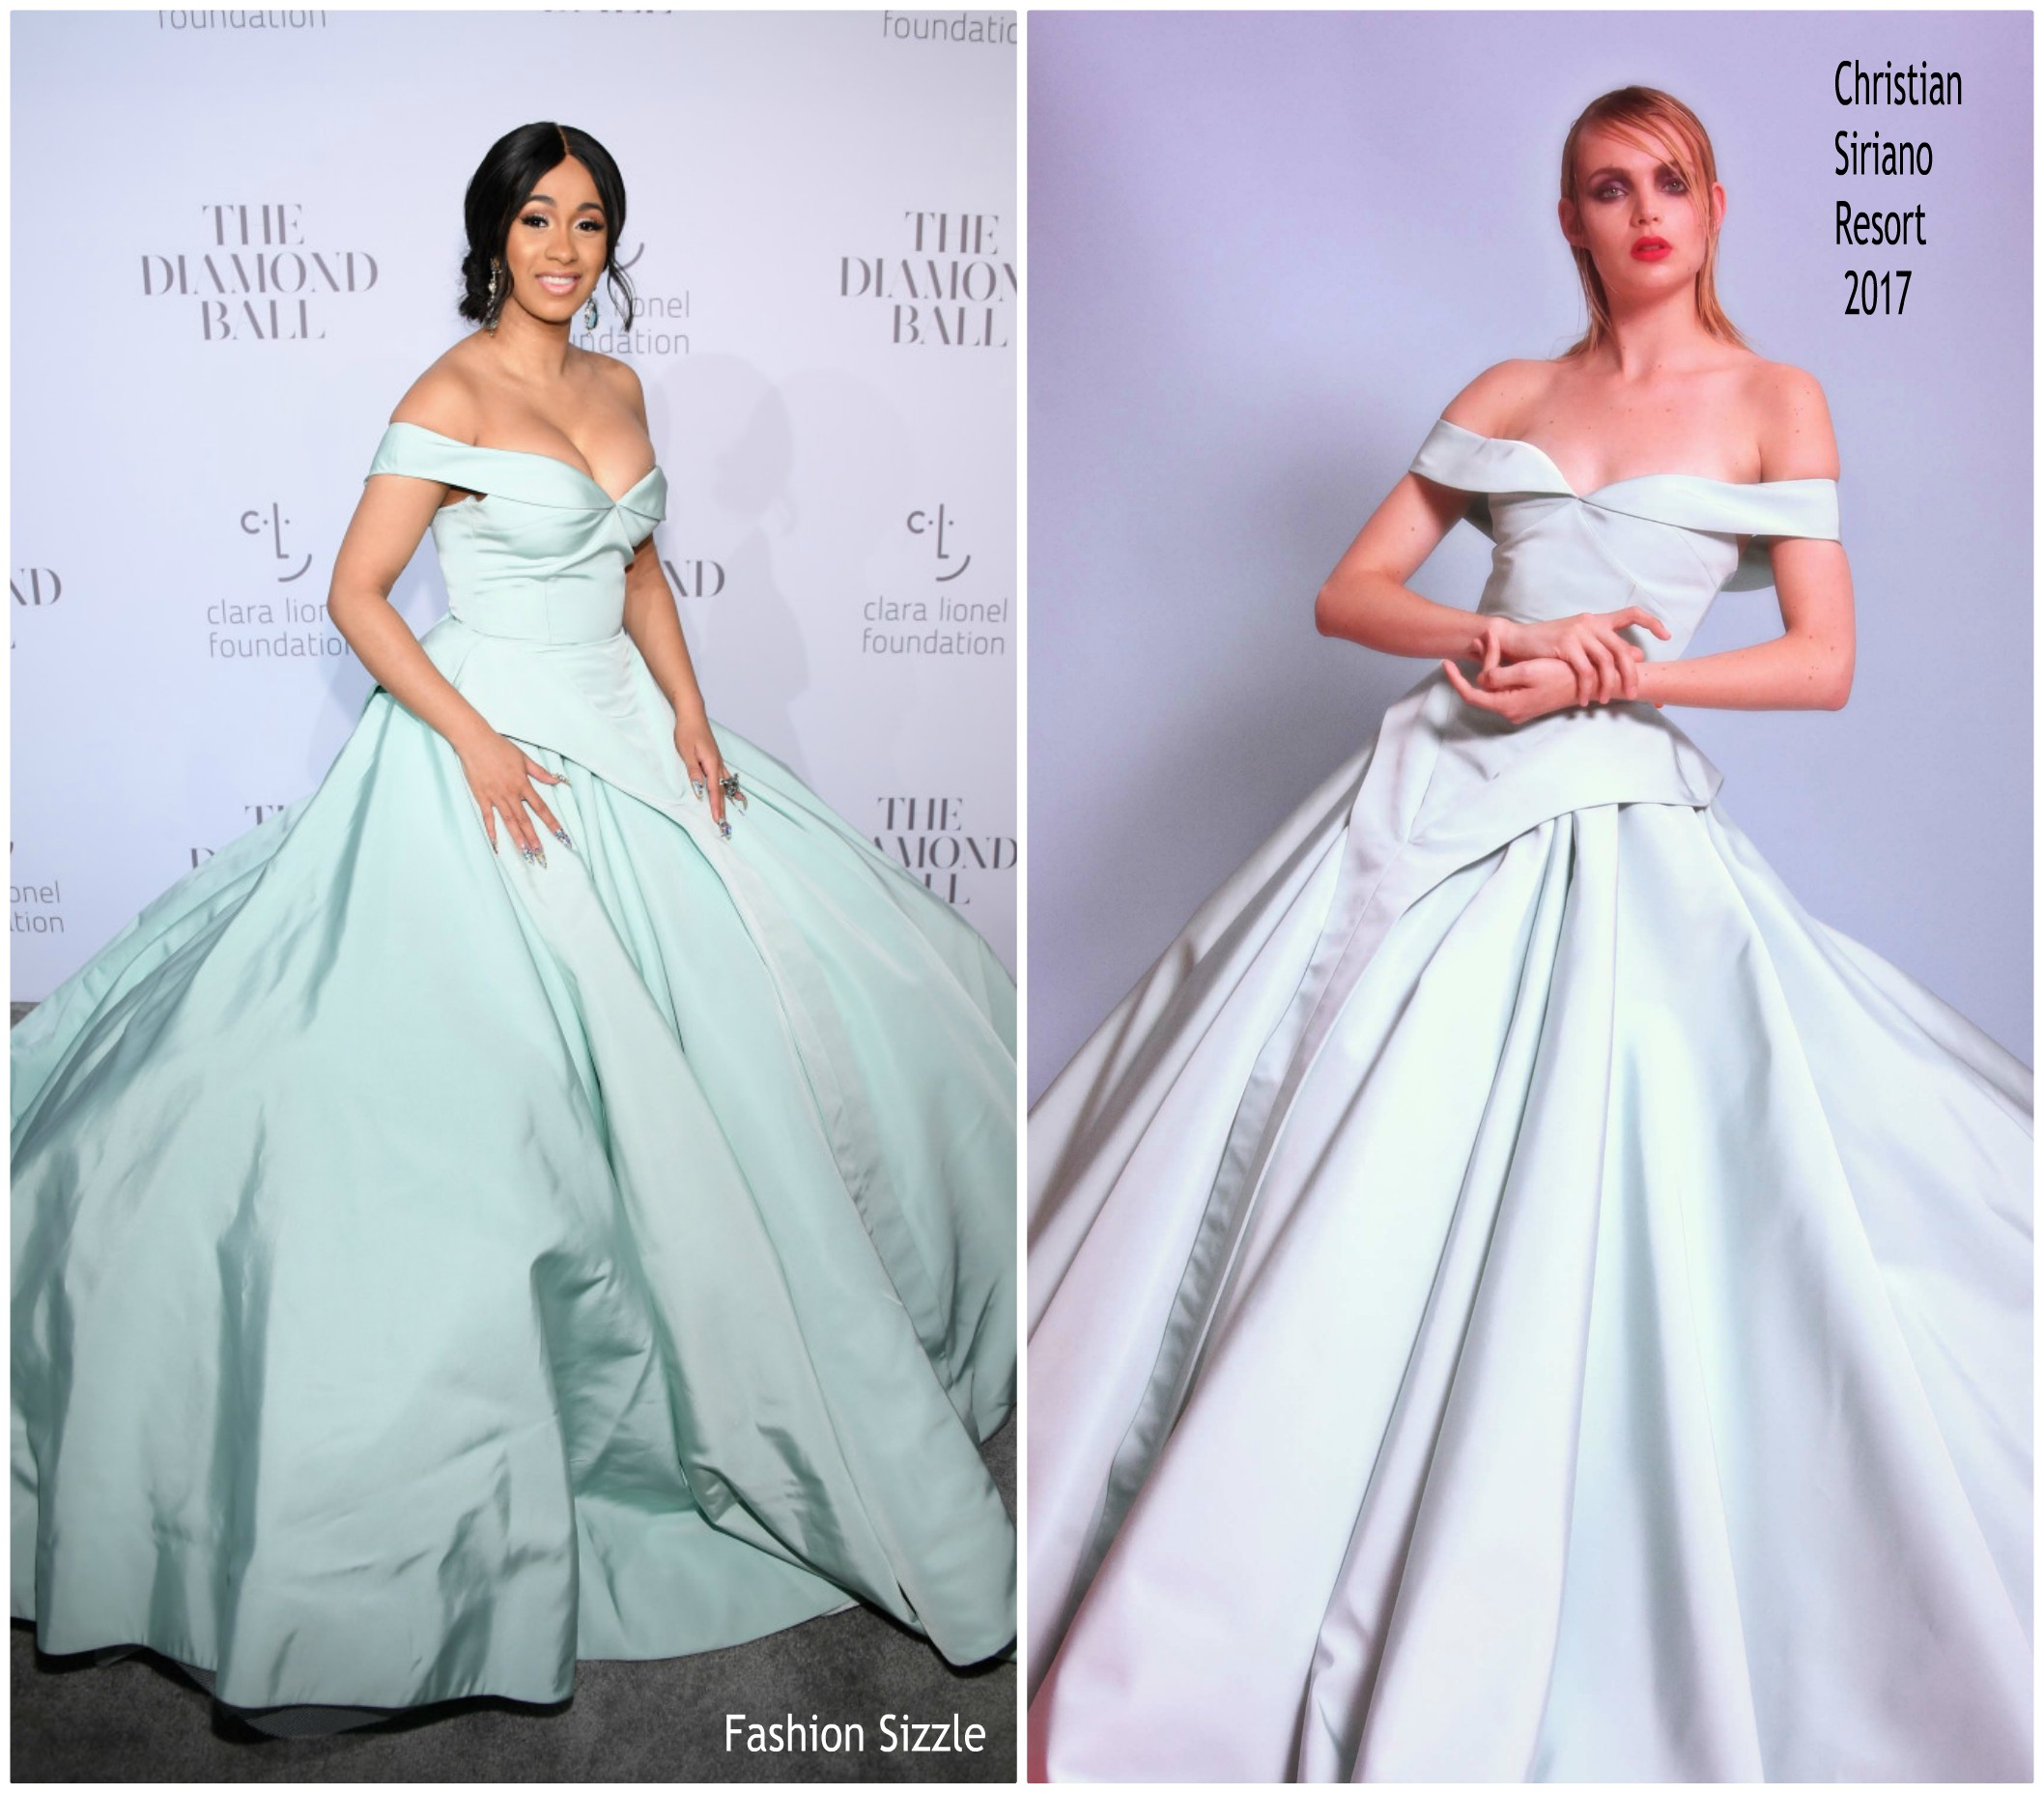 cardi-b-in-christian-siriano-3rd-annual-diamond-ball-benefitting-the-clara-lionel-foundation